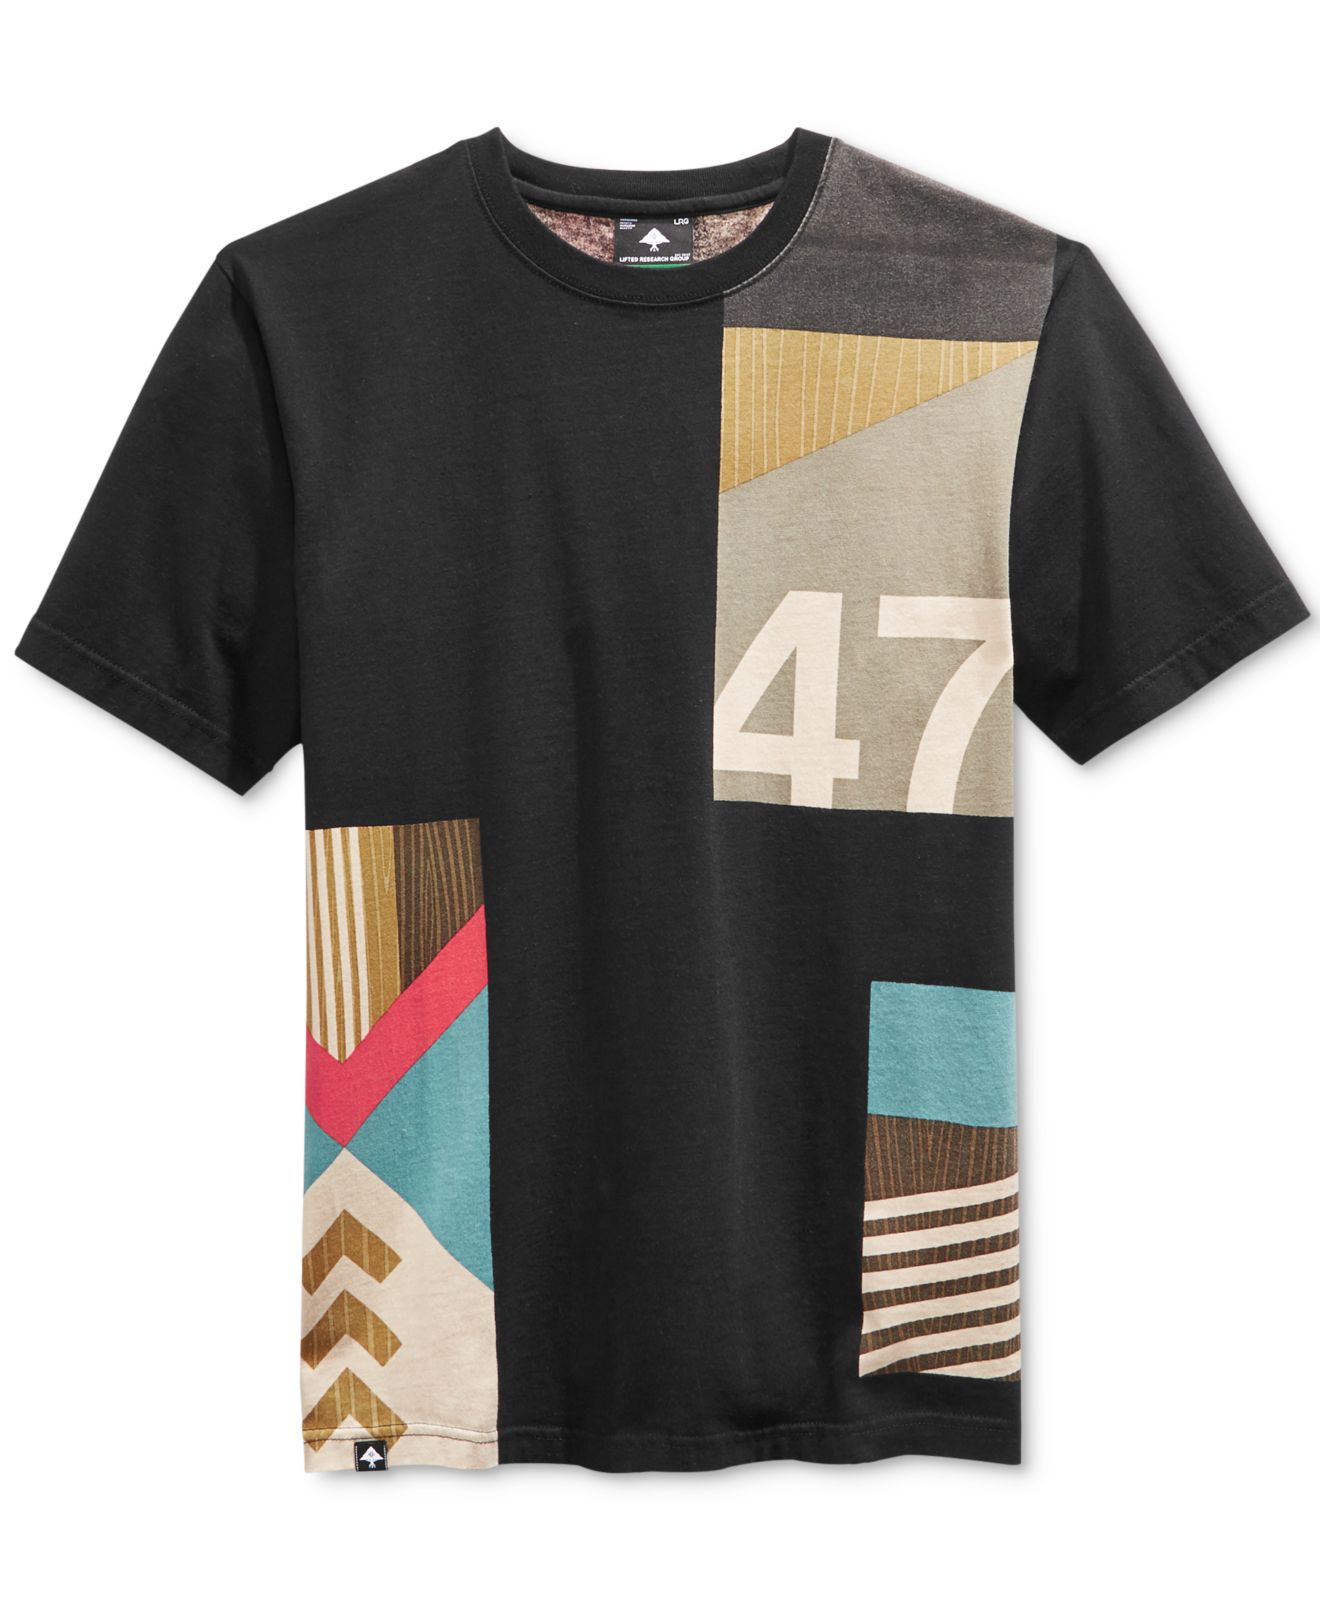 Lrg men 39 s big tall paddle team graphic print t shirt in for Big and tall printed t shirts